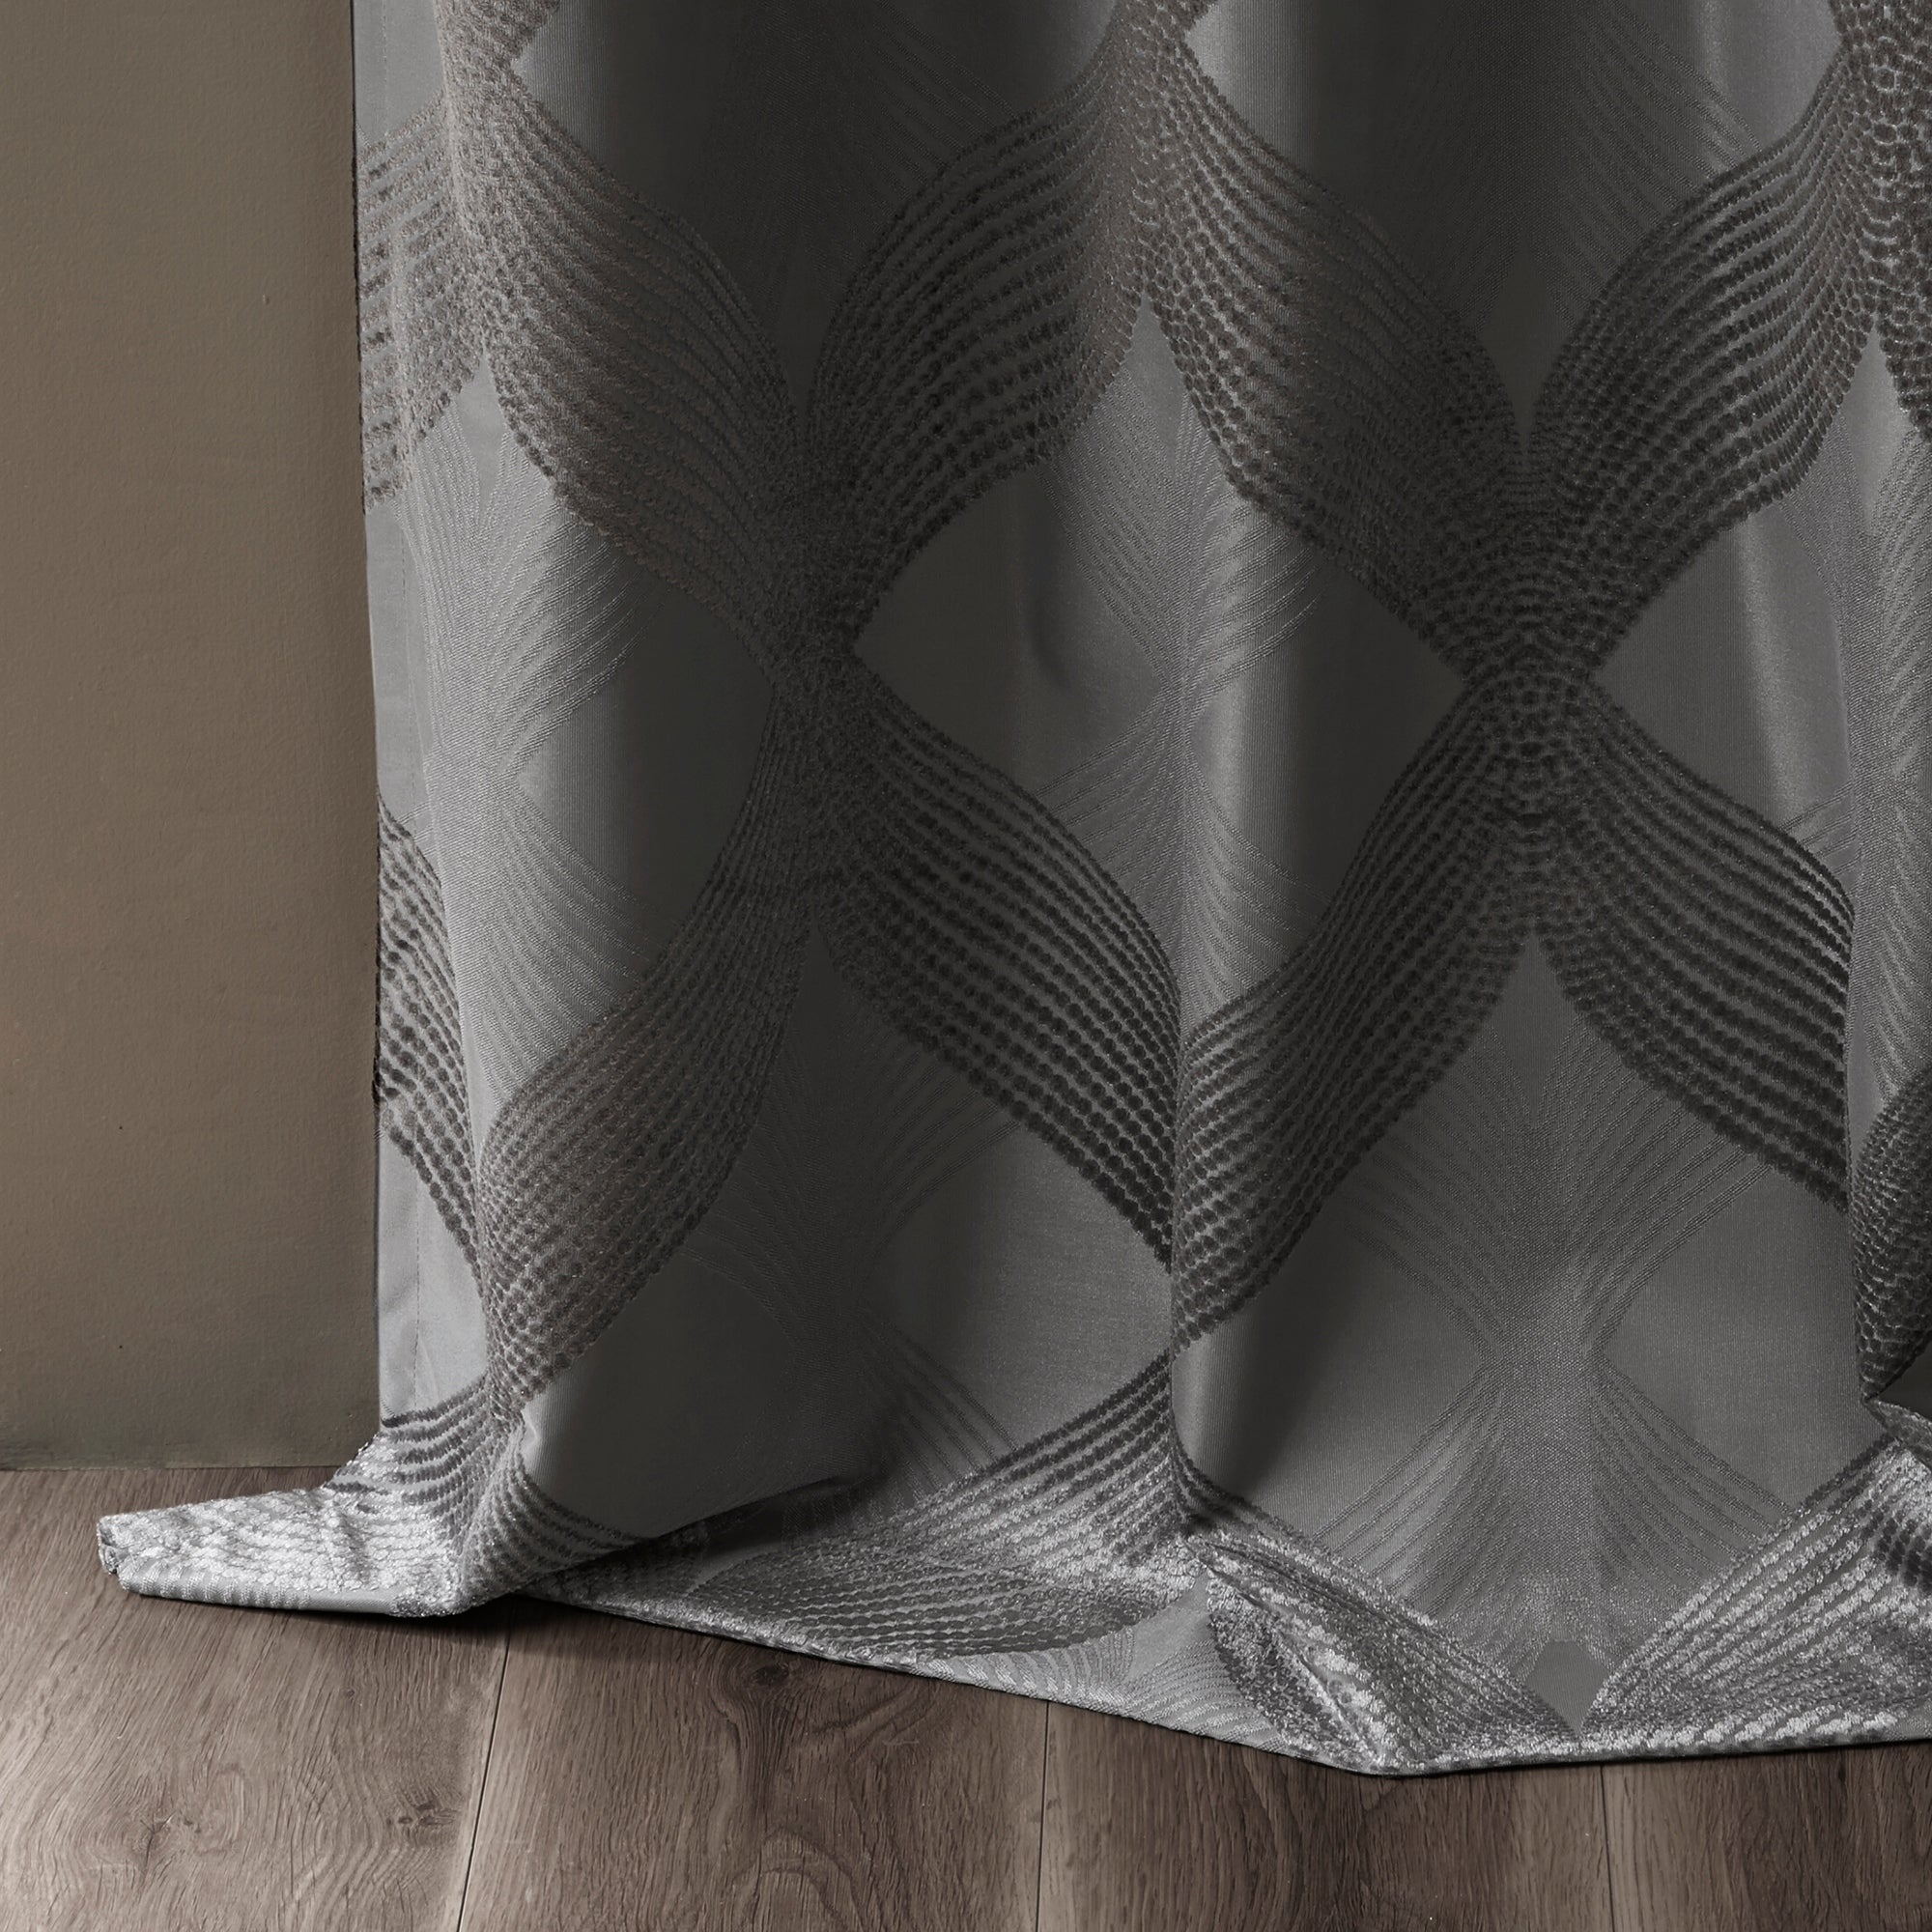 Sunsmart Abel Ogee Knitted Jacquard Total Blackout Curtain Panel With Regard To Sunsmart Abel Ogee Knitted Jacquard Total Blackout Curtain Panels (View 14 of 30)